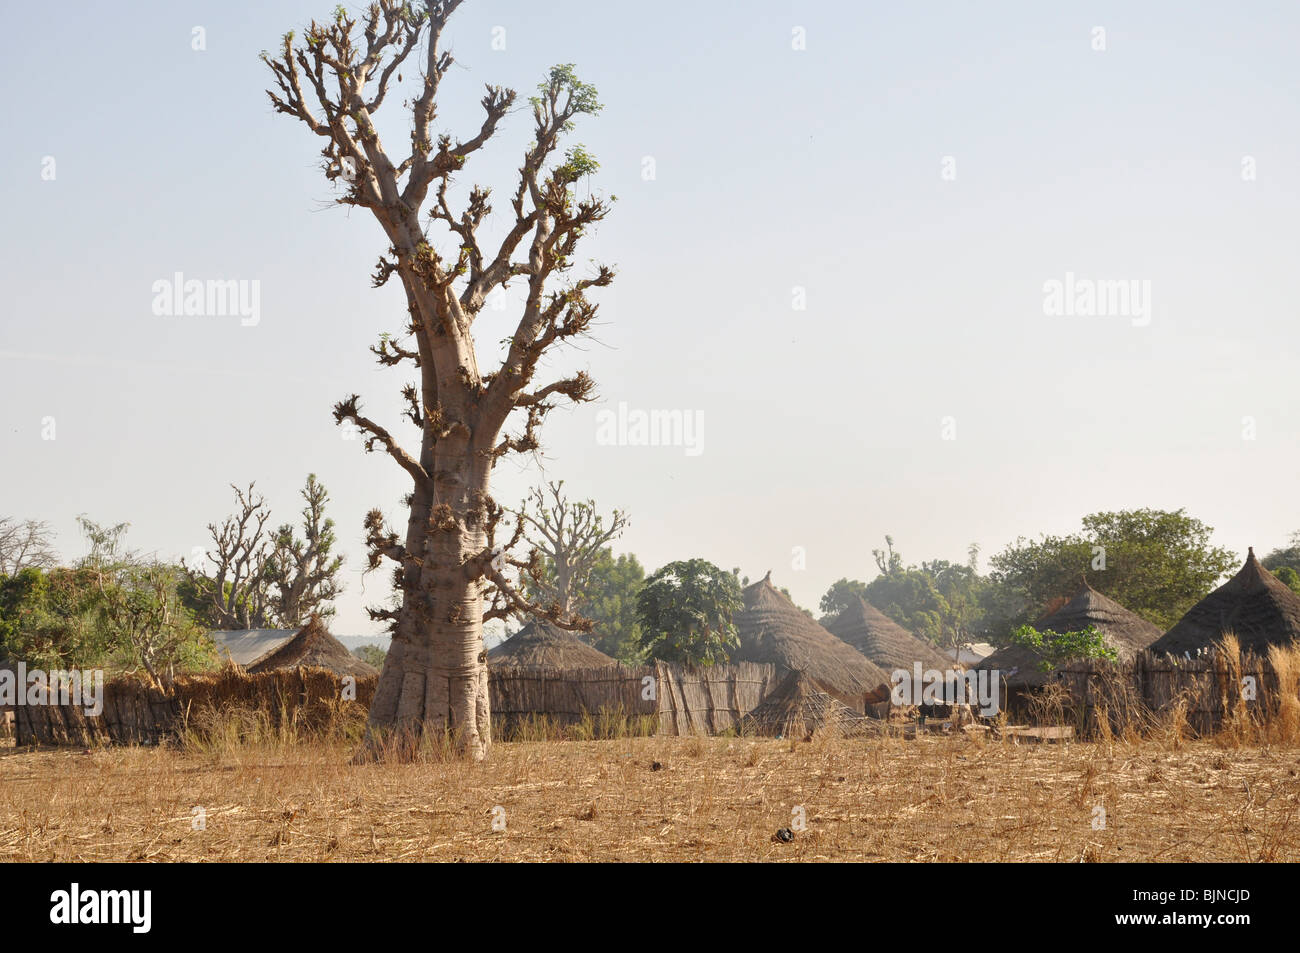 Compounds for extended families in a village in The Gambia - Stock Image